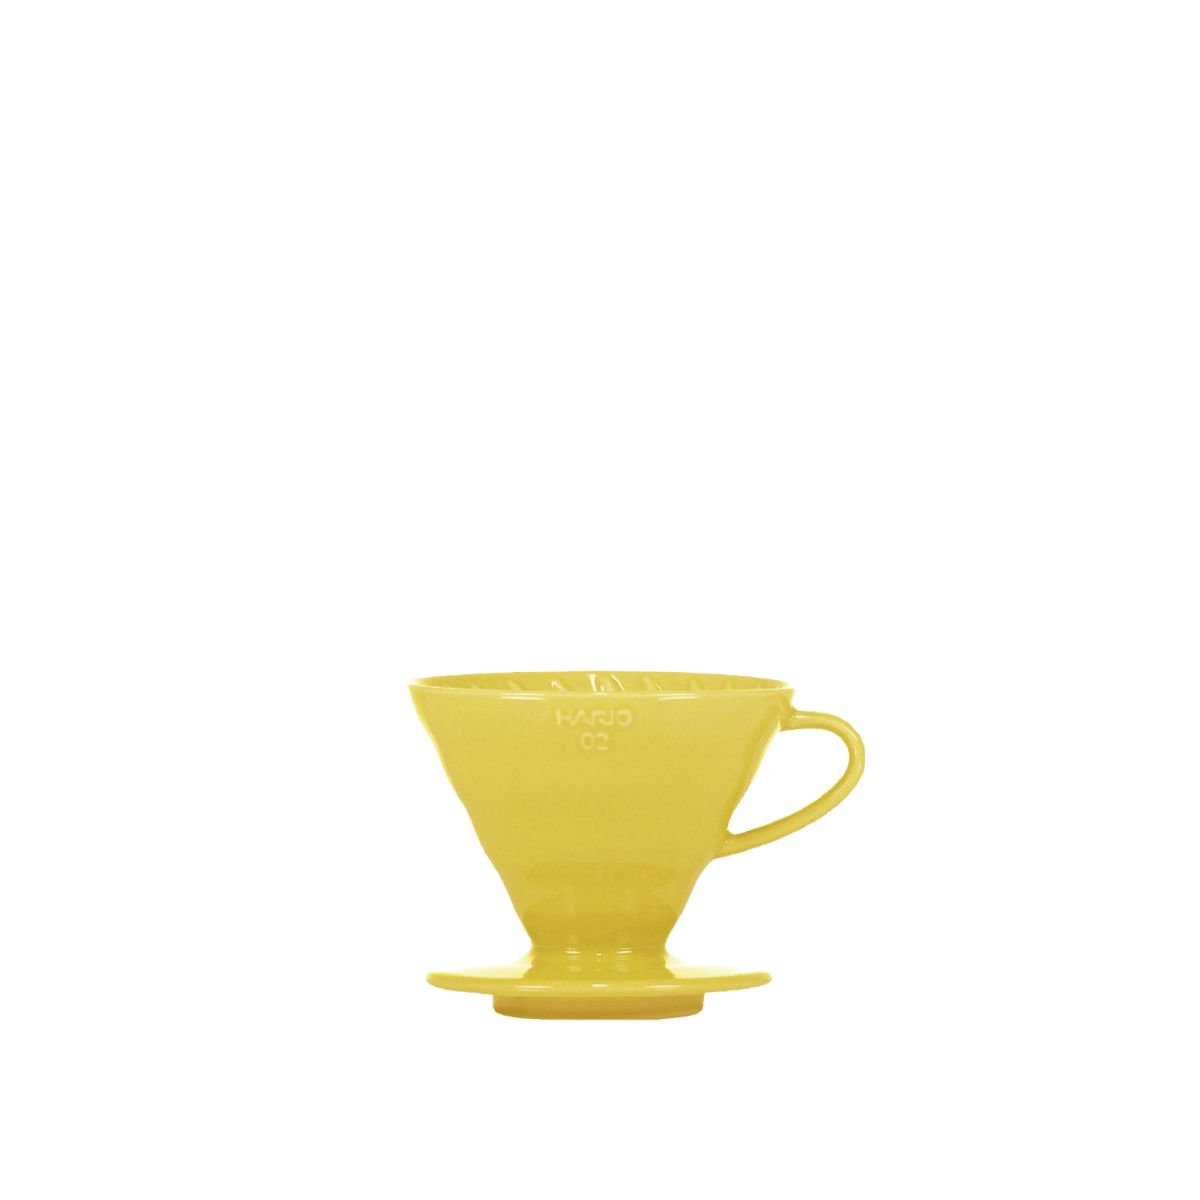 V60 Porcelain Dripper Hario [3/4 cups] - Yellow